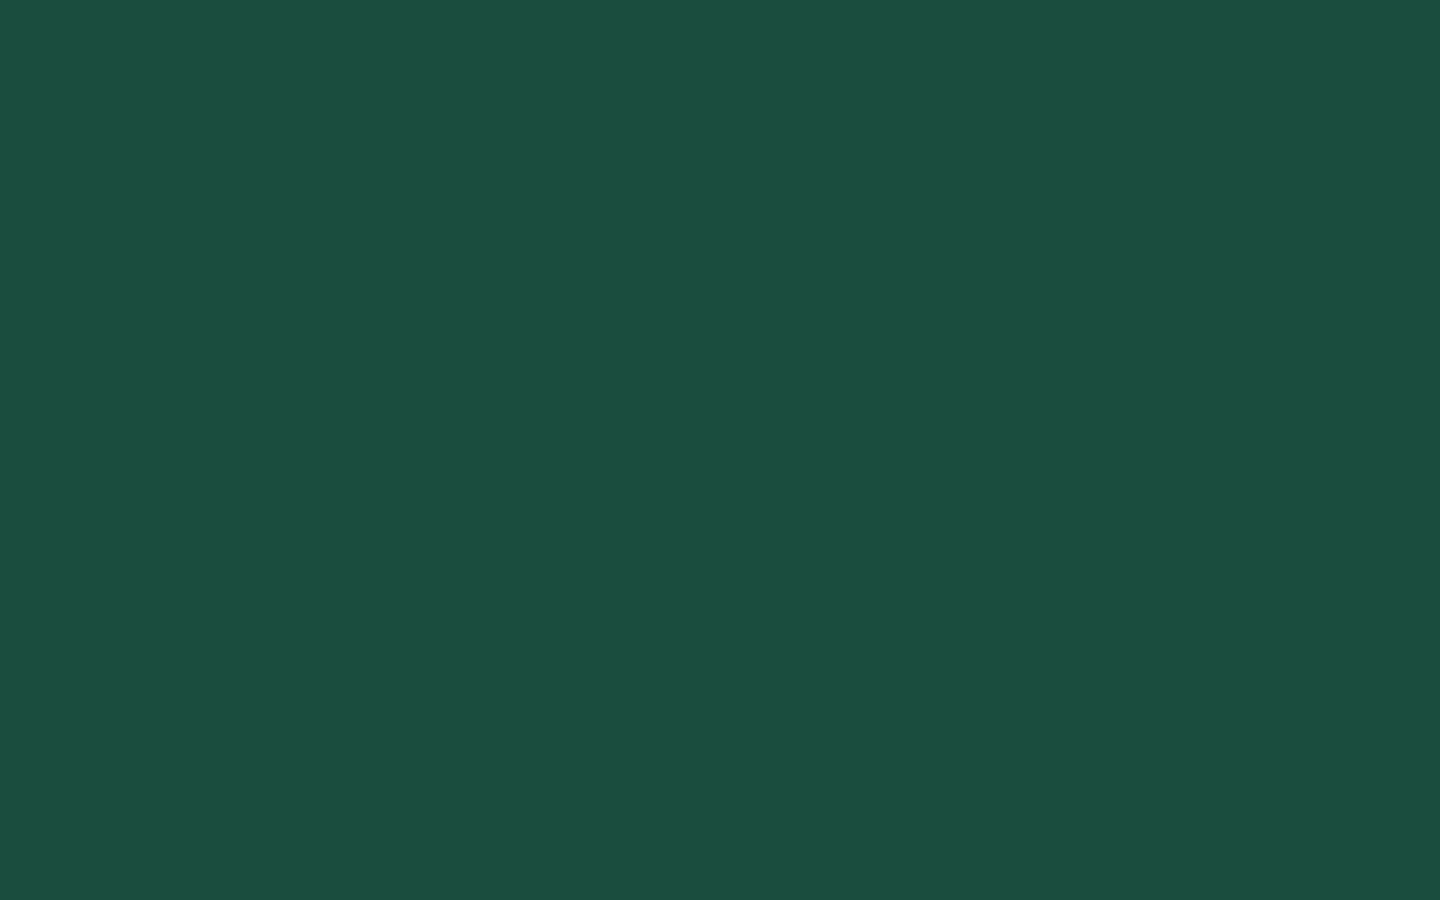 1440x900 English Green Solid Color Background